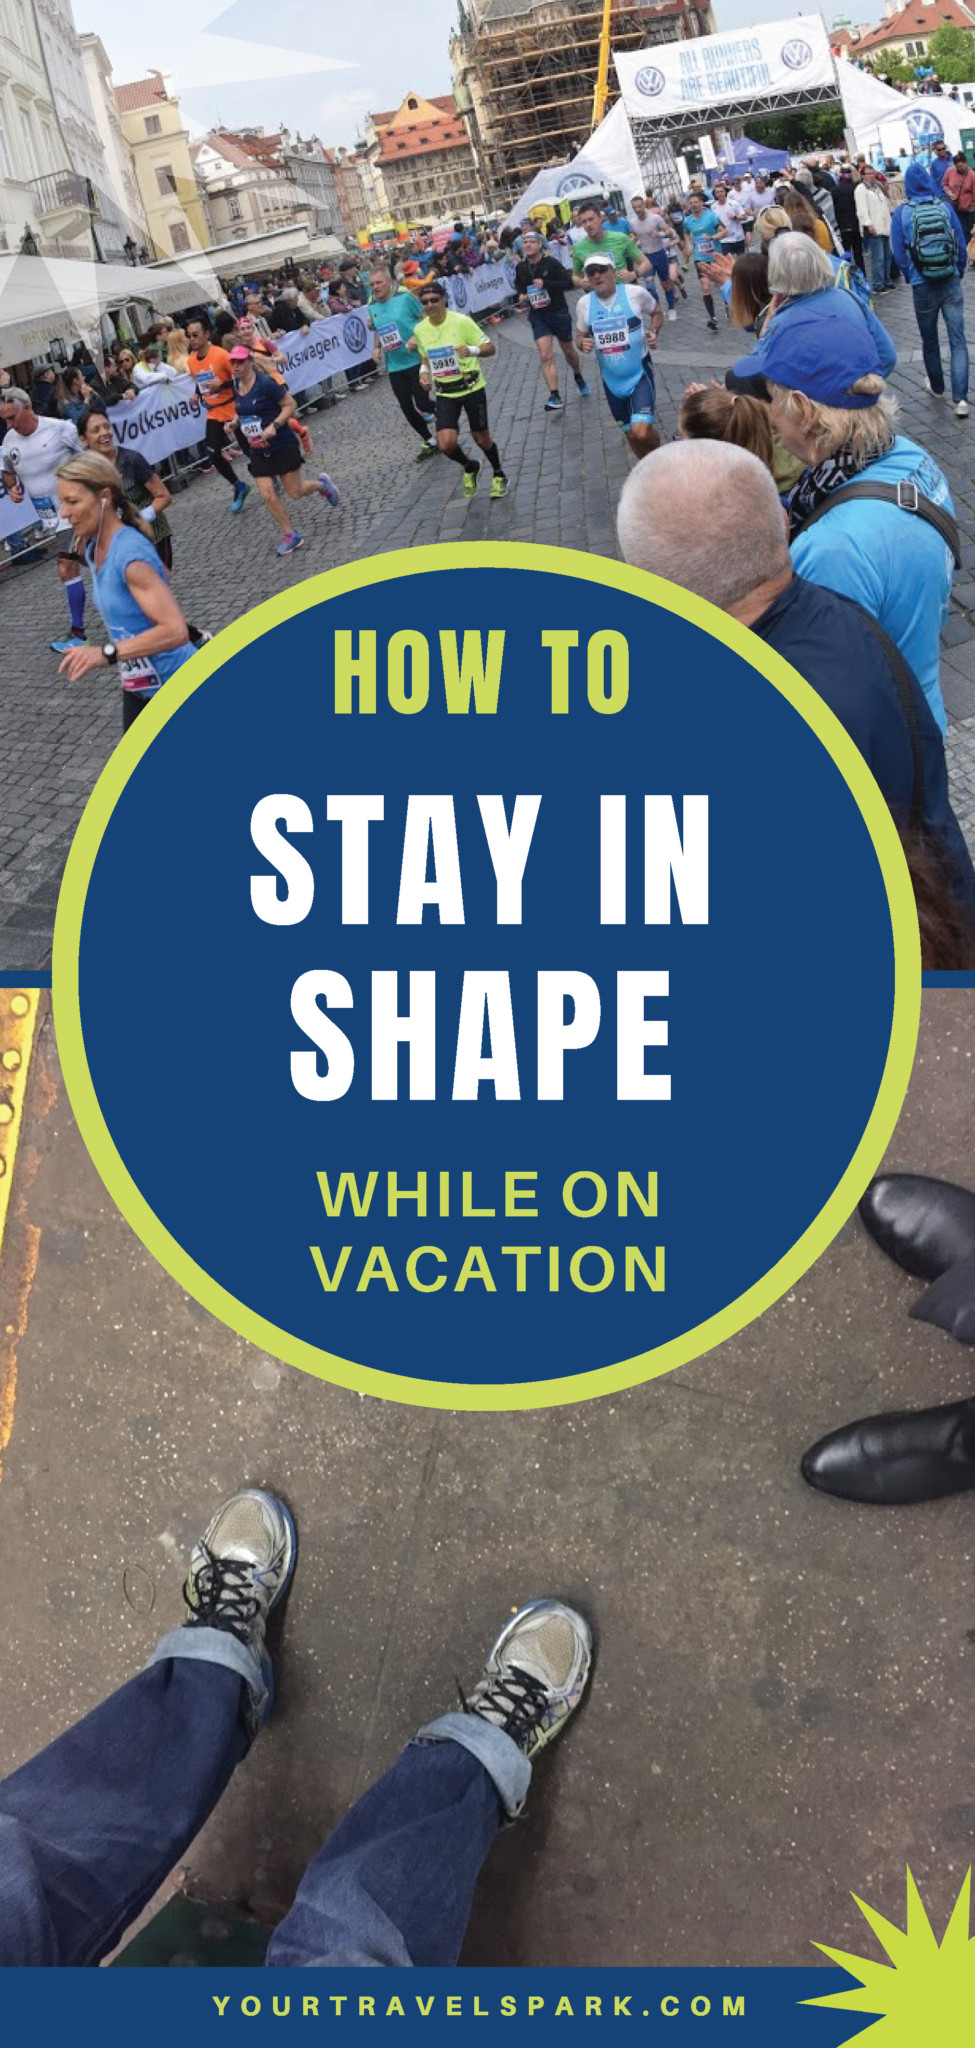 When traveling, it can be easy to lose track of staying in shape. Here are our top tips for exercising while traveling. #stayinginshape #travelexercise #stayinginshapewhiletraveling #vacationexercise